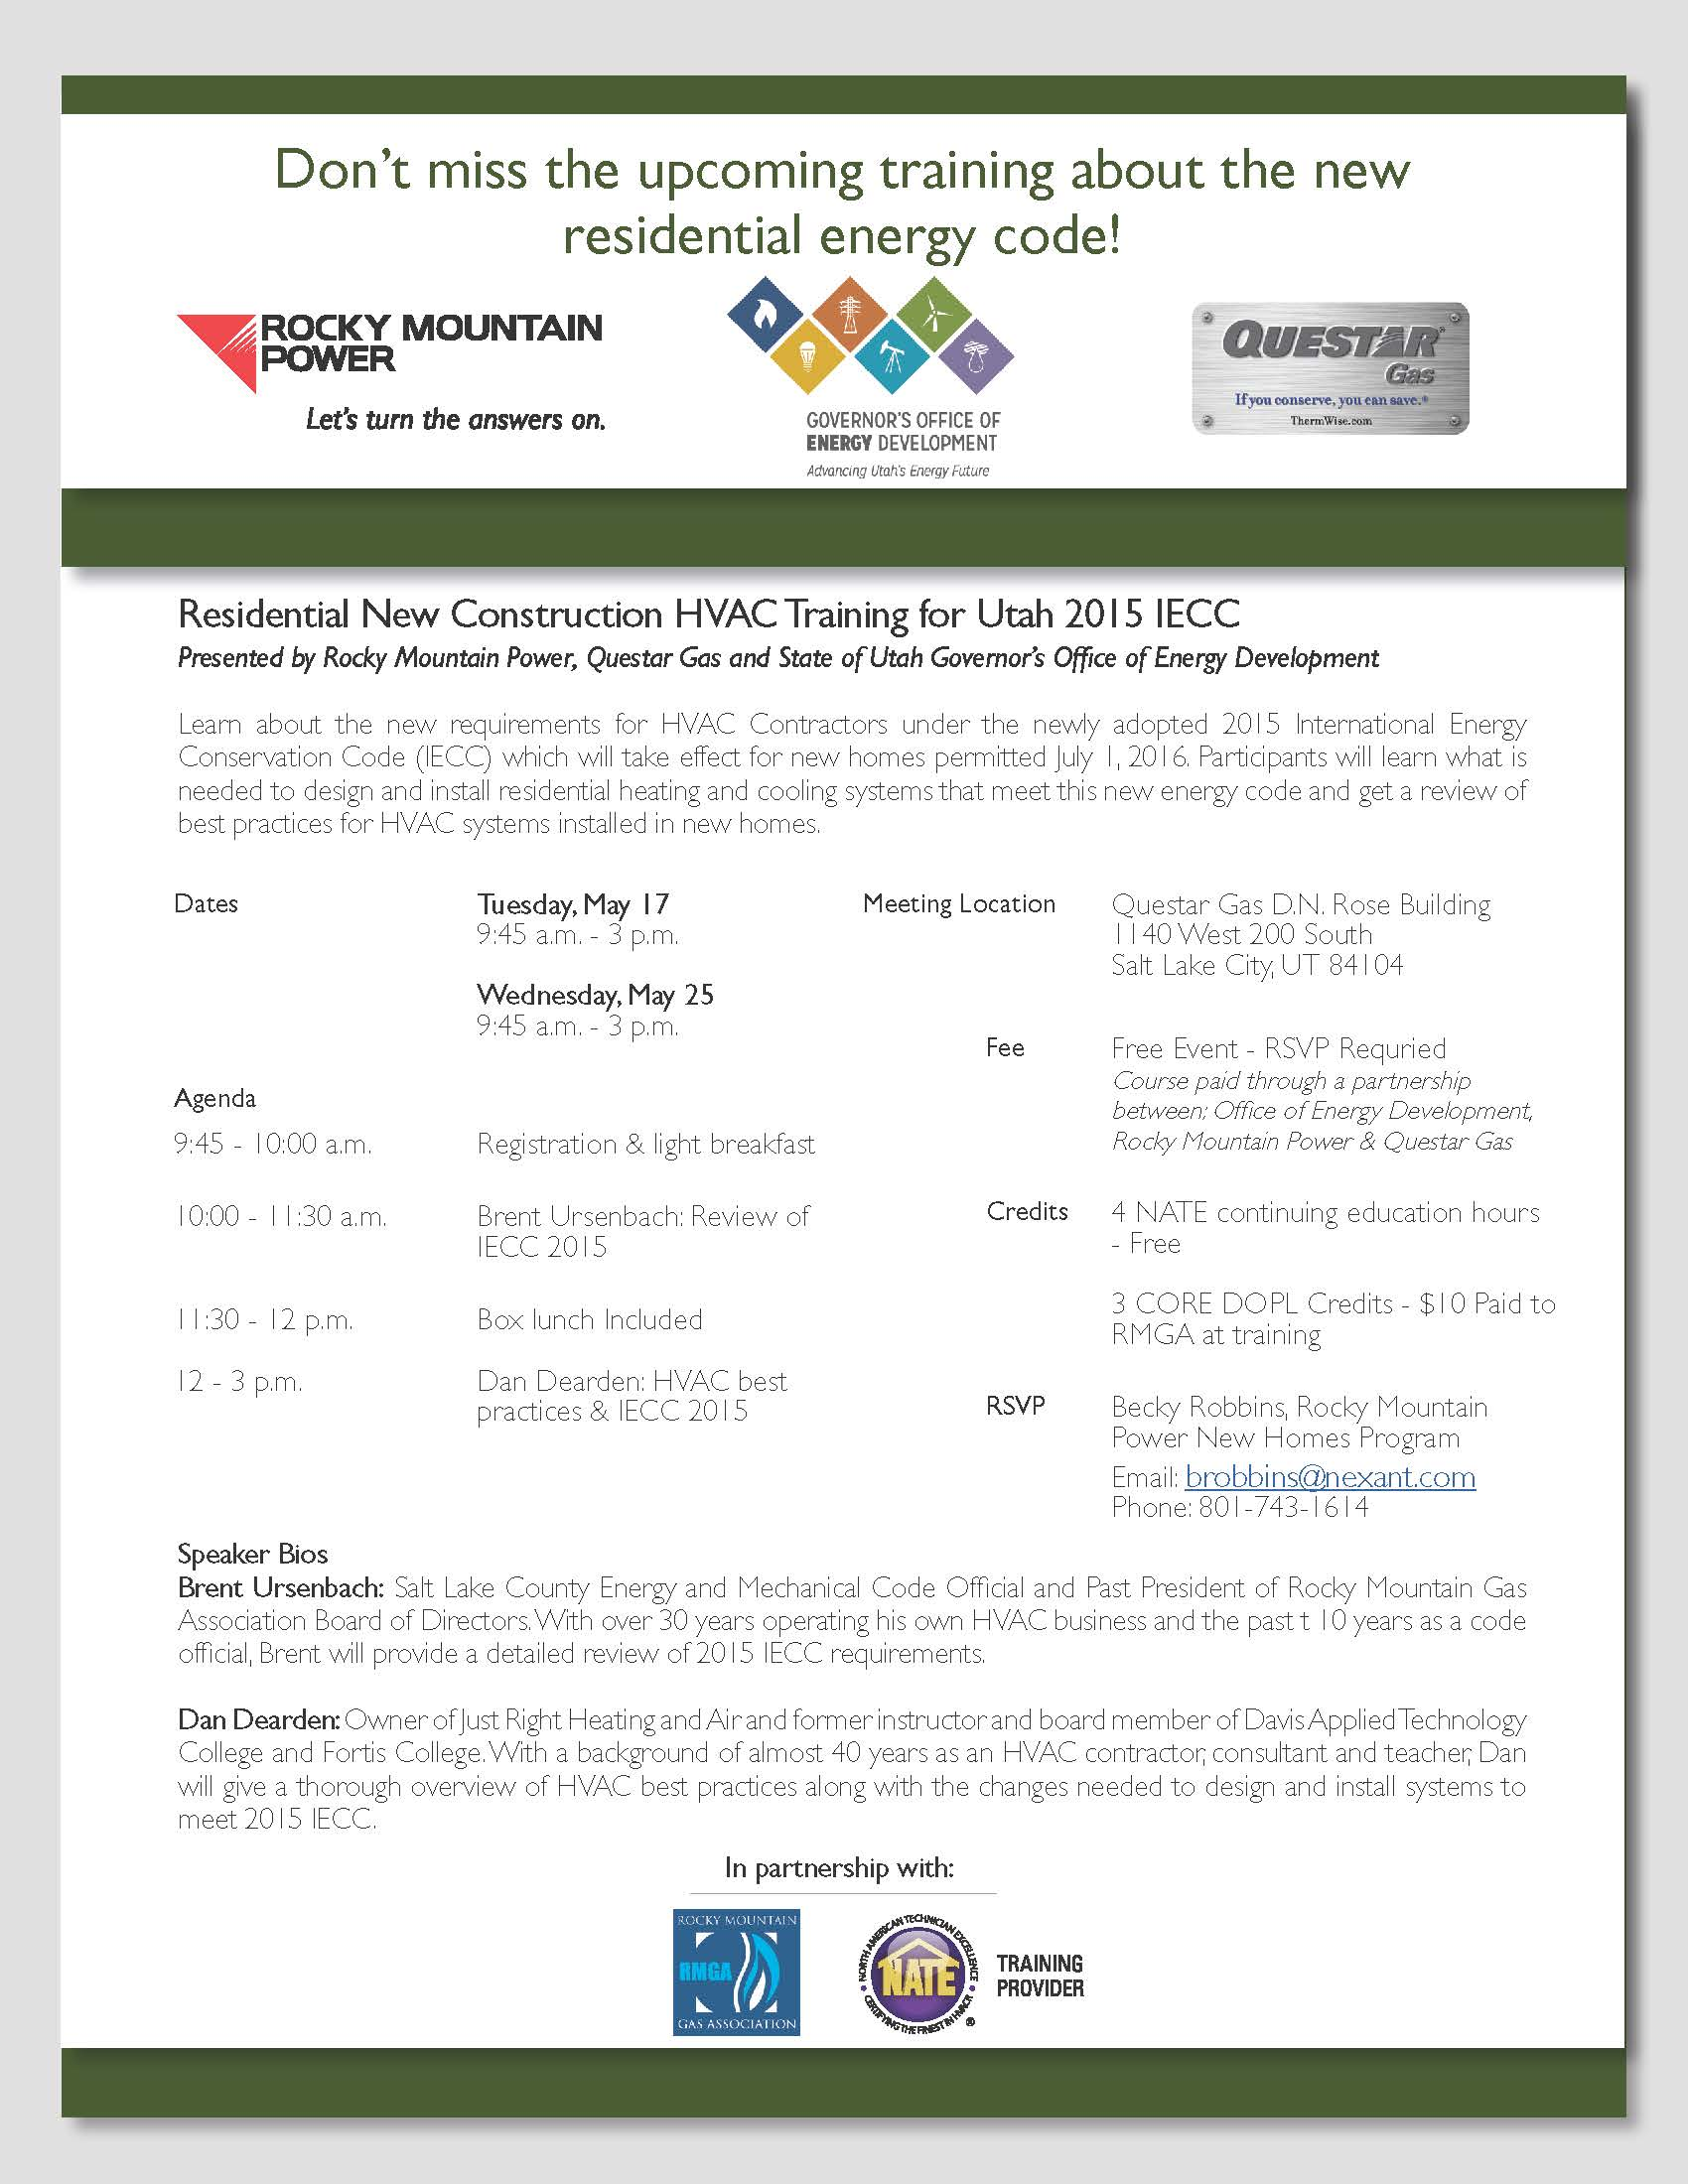 HVAC Energy Code Trainings May 17 - 25